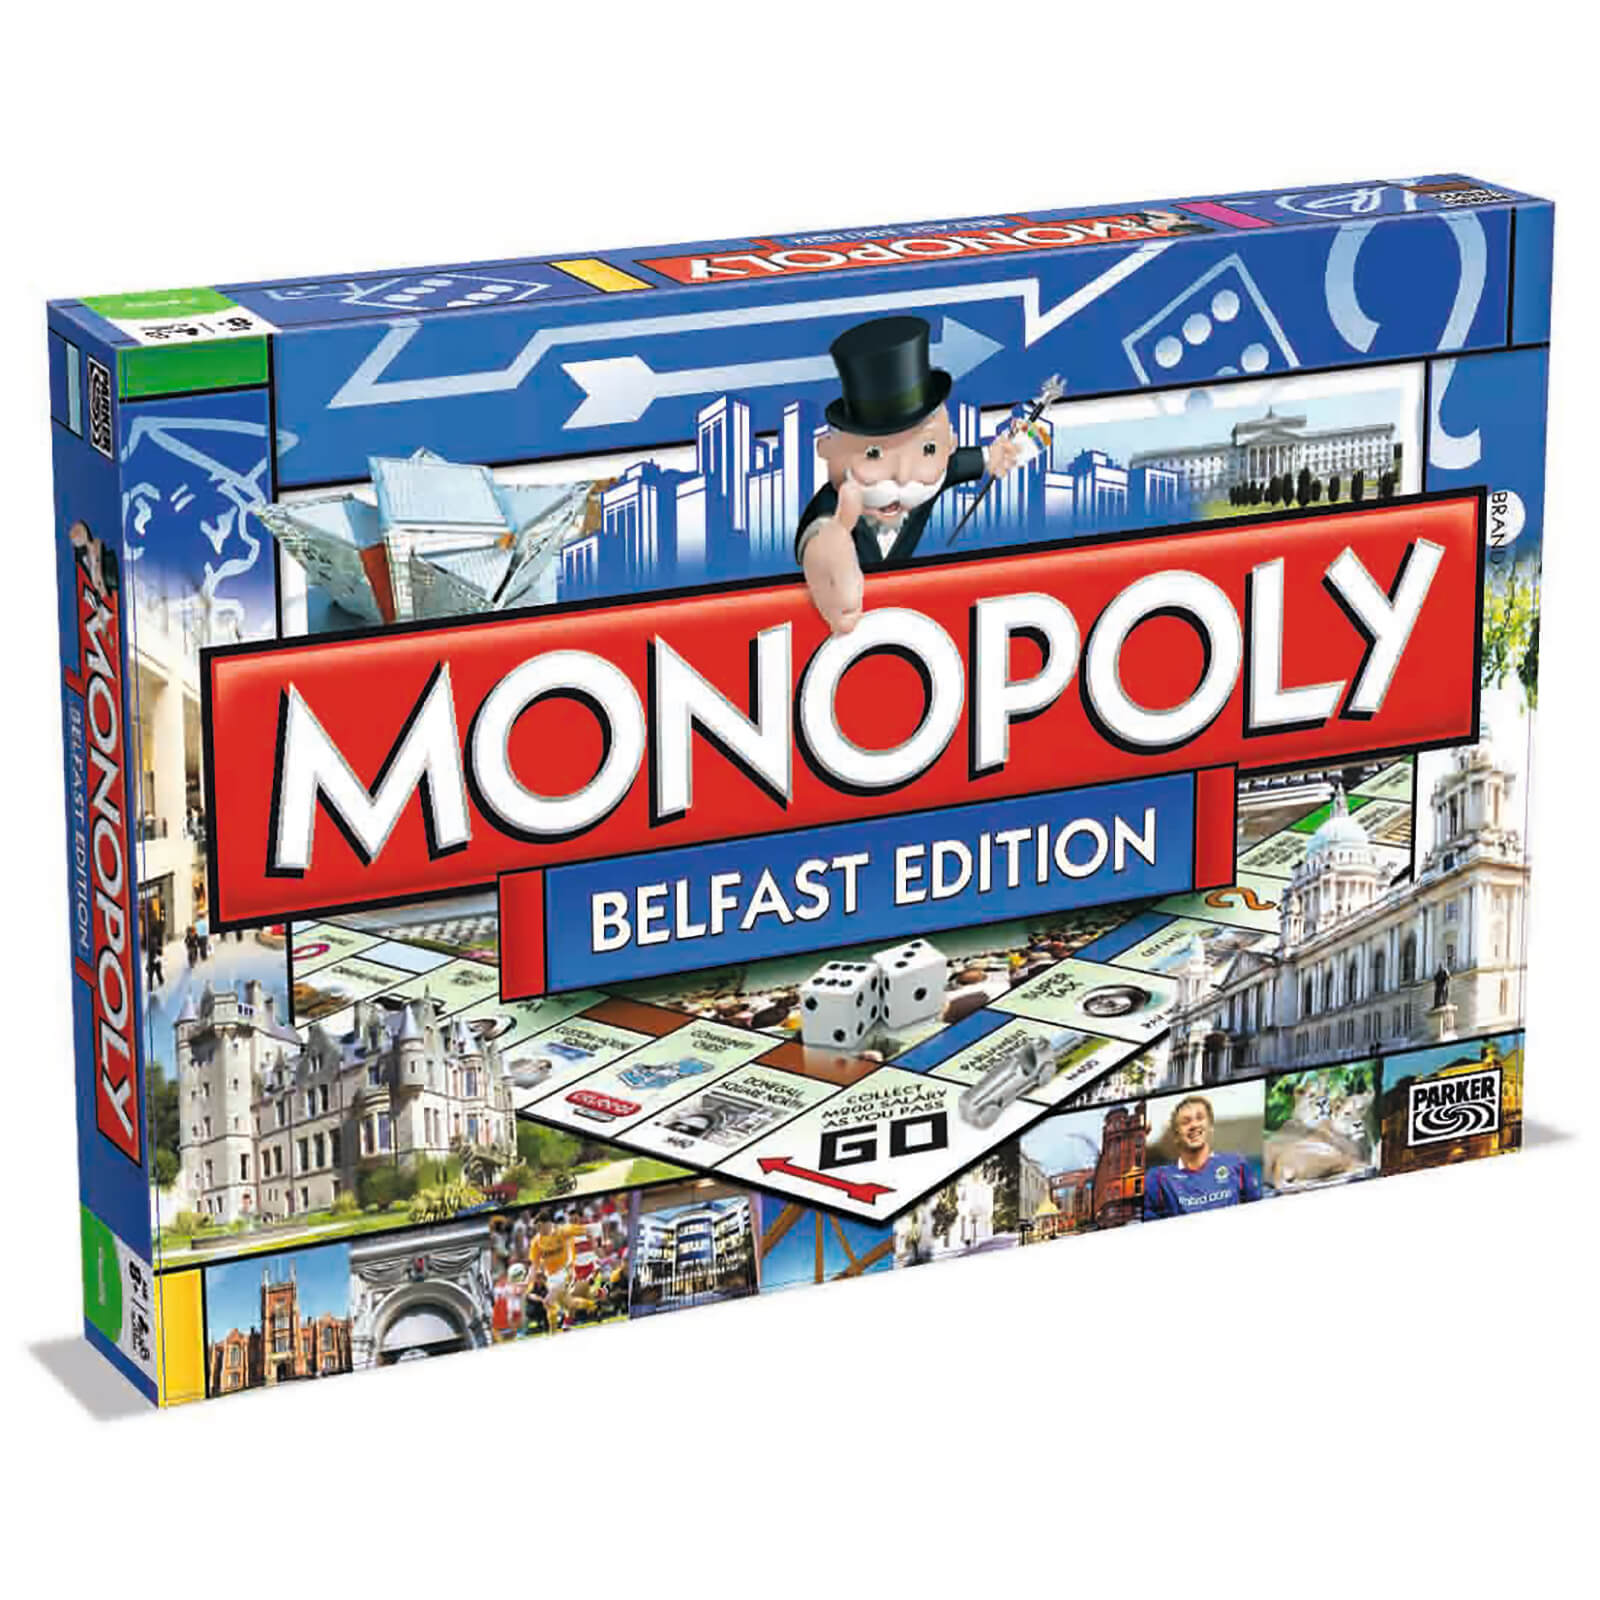 Image of Monopoly Board Game - Belfast Edition